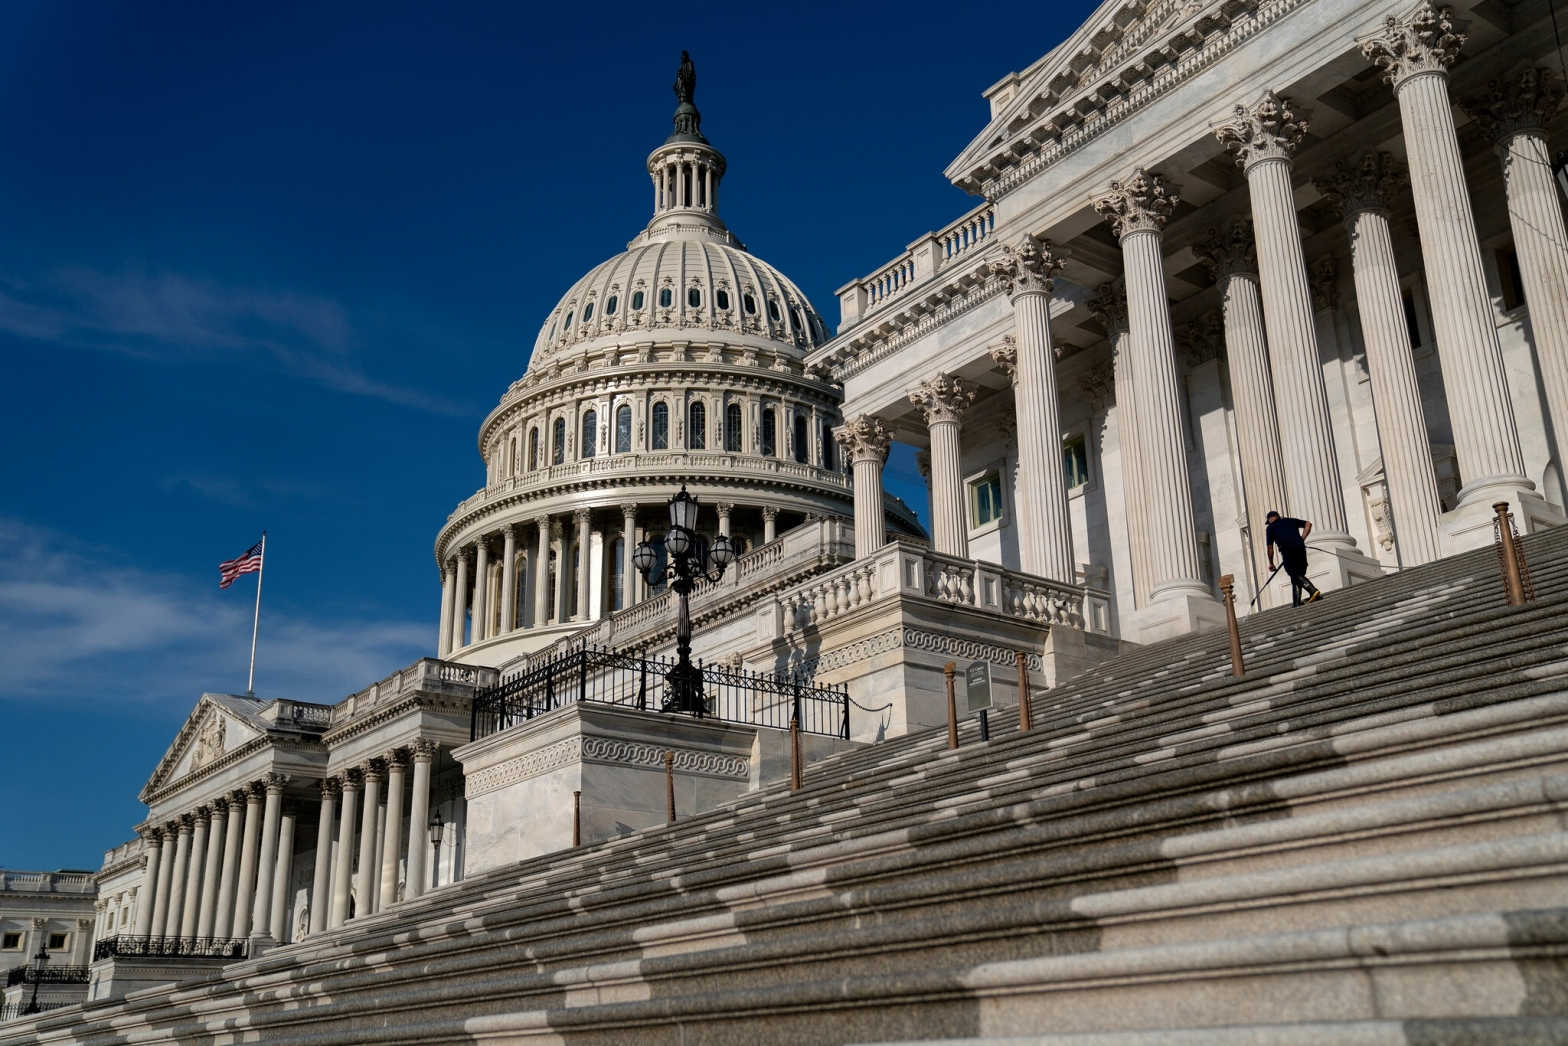 New York Times: Republicans Block Voting Rights Bill, Dealing Blow to Biden and Democrats